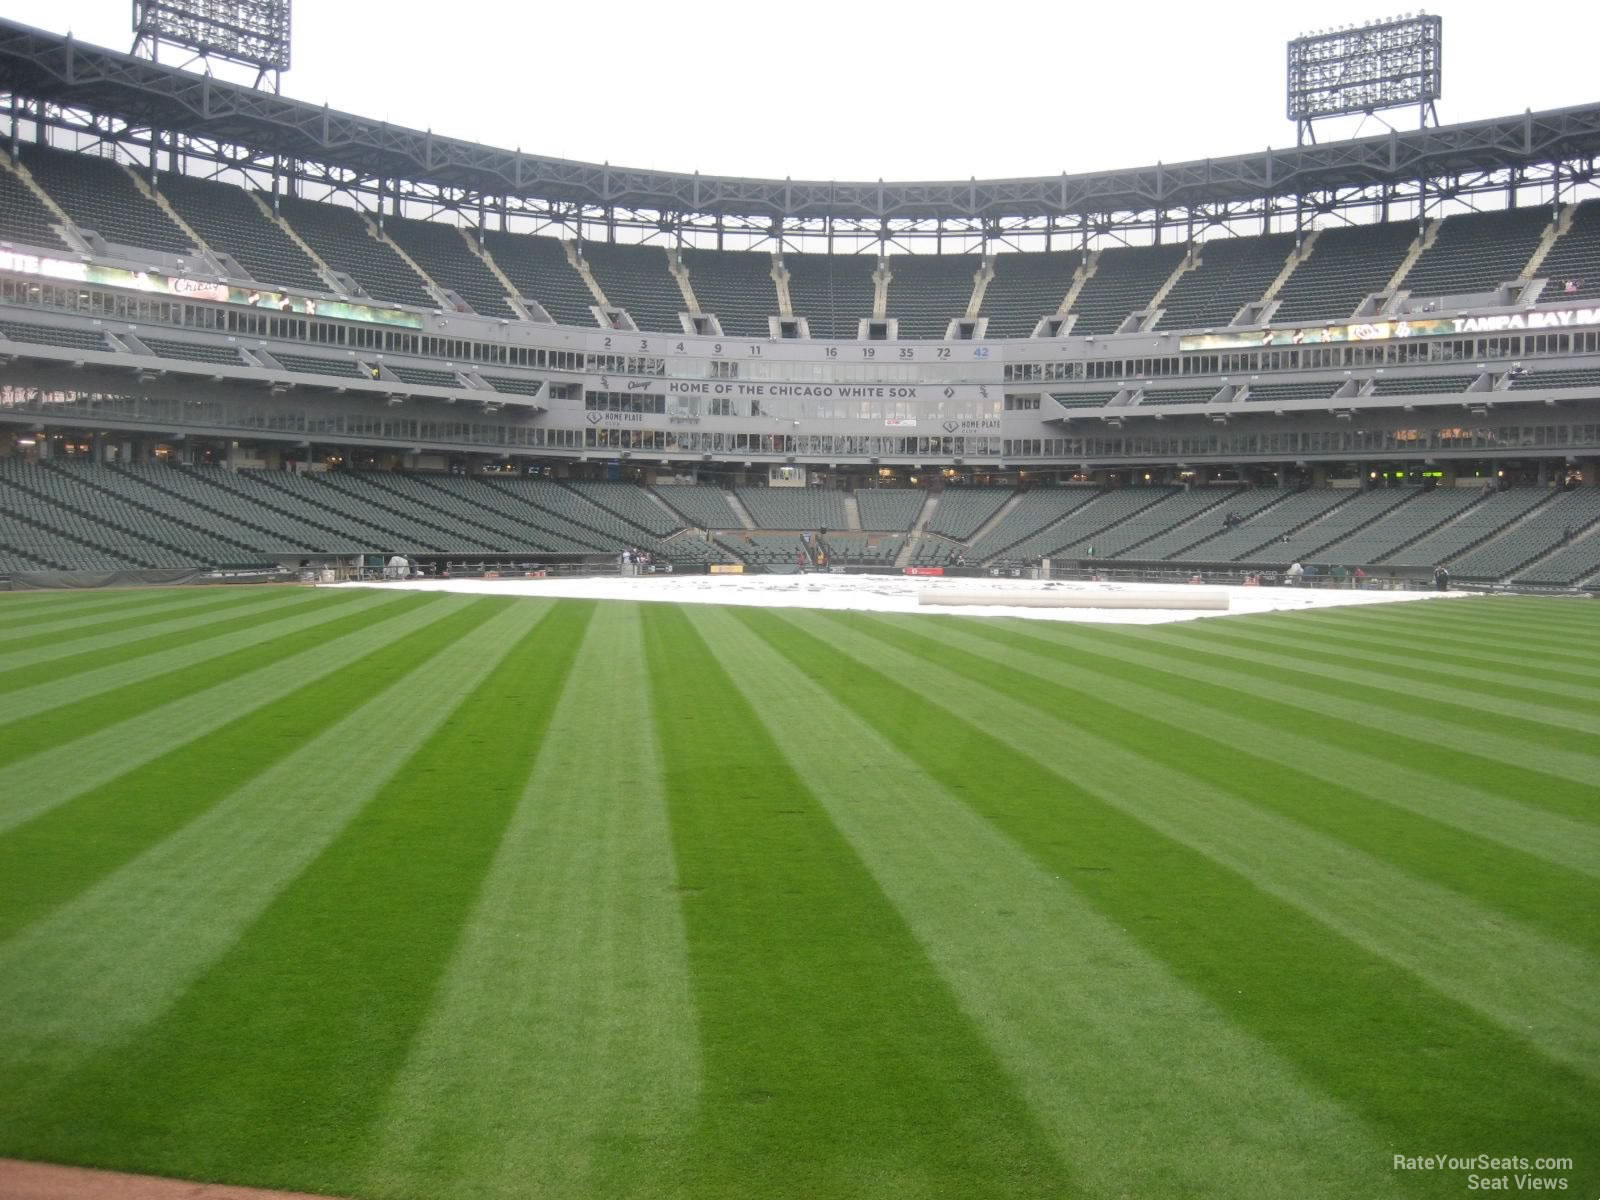 Seat View for Guaranteed Rate Field Section 100, Row 1